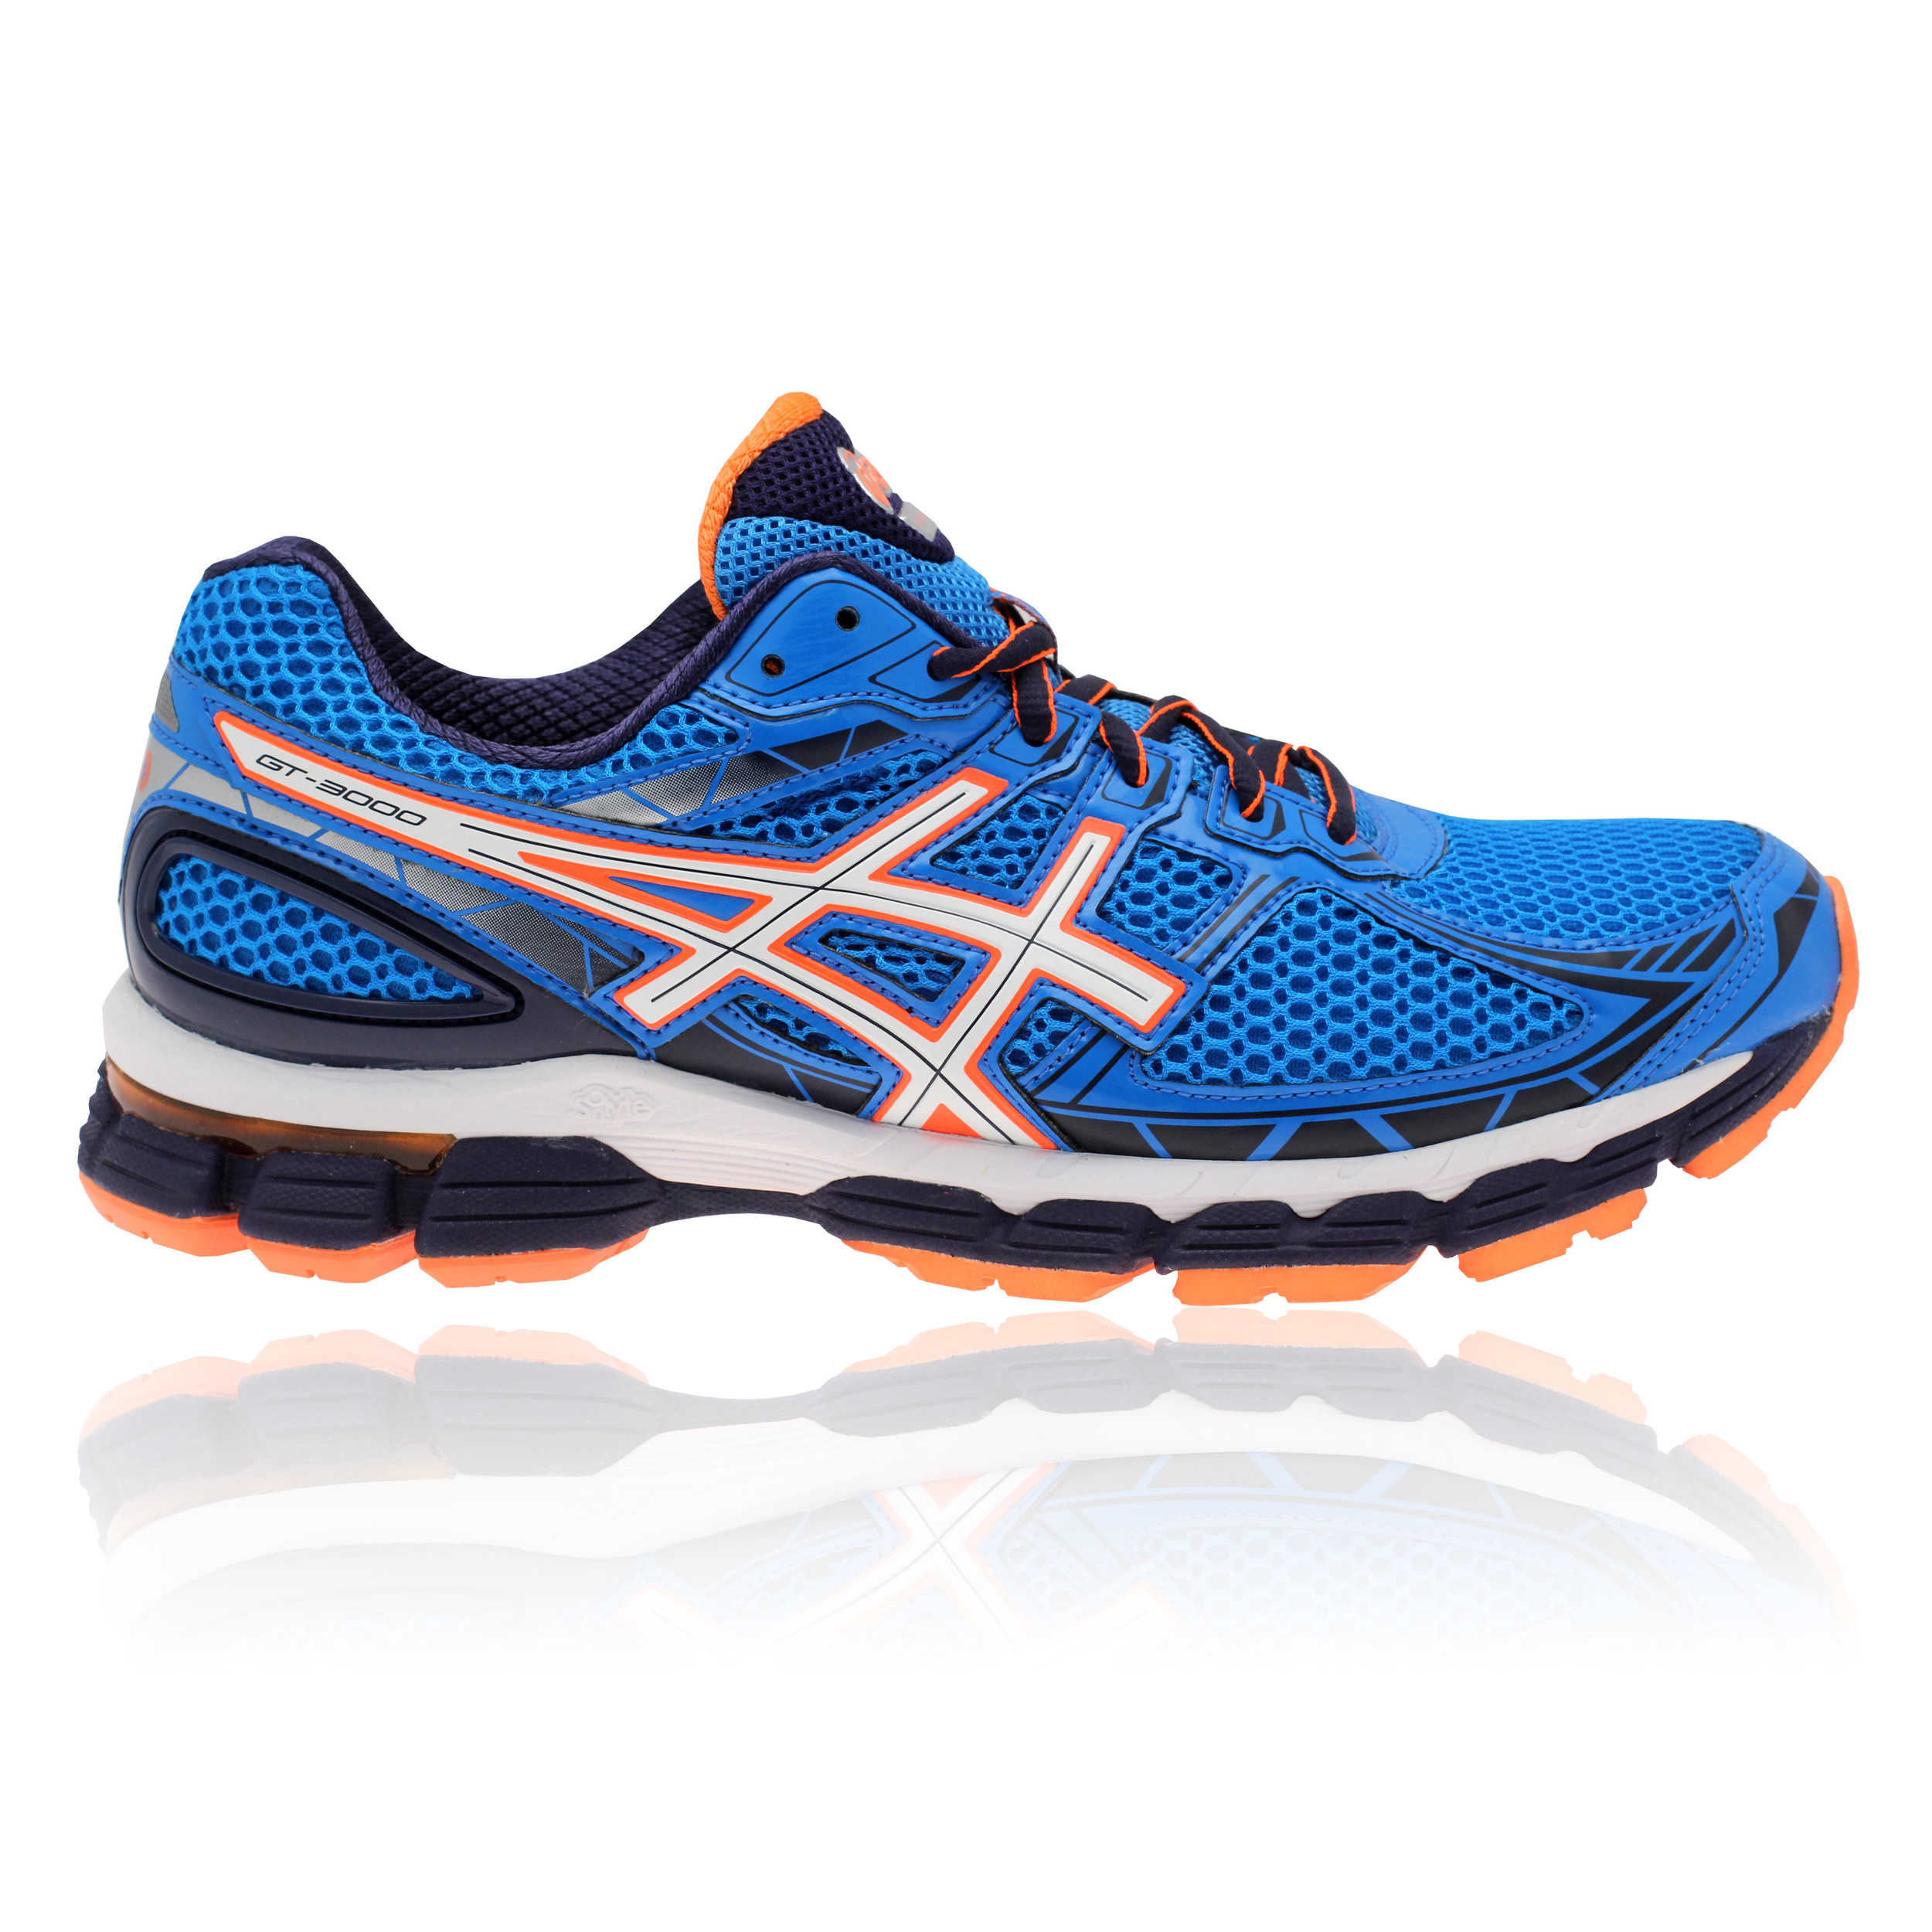 asics gt 3000 2 running shoes 50 off. Black Bedroom Furniture Sets. Home Design Ideas